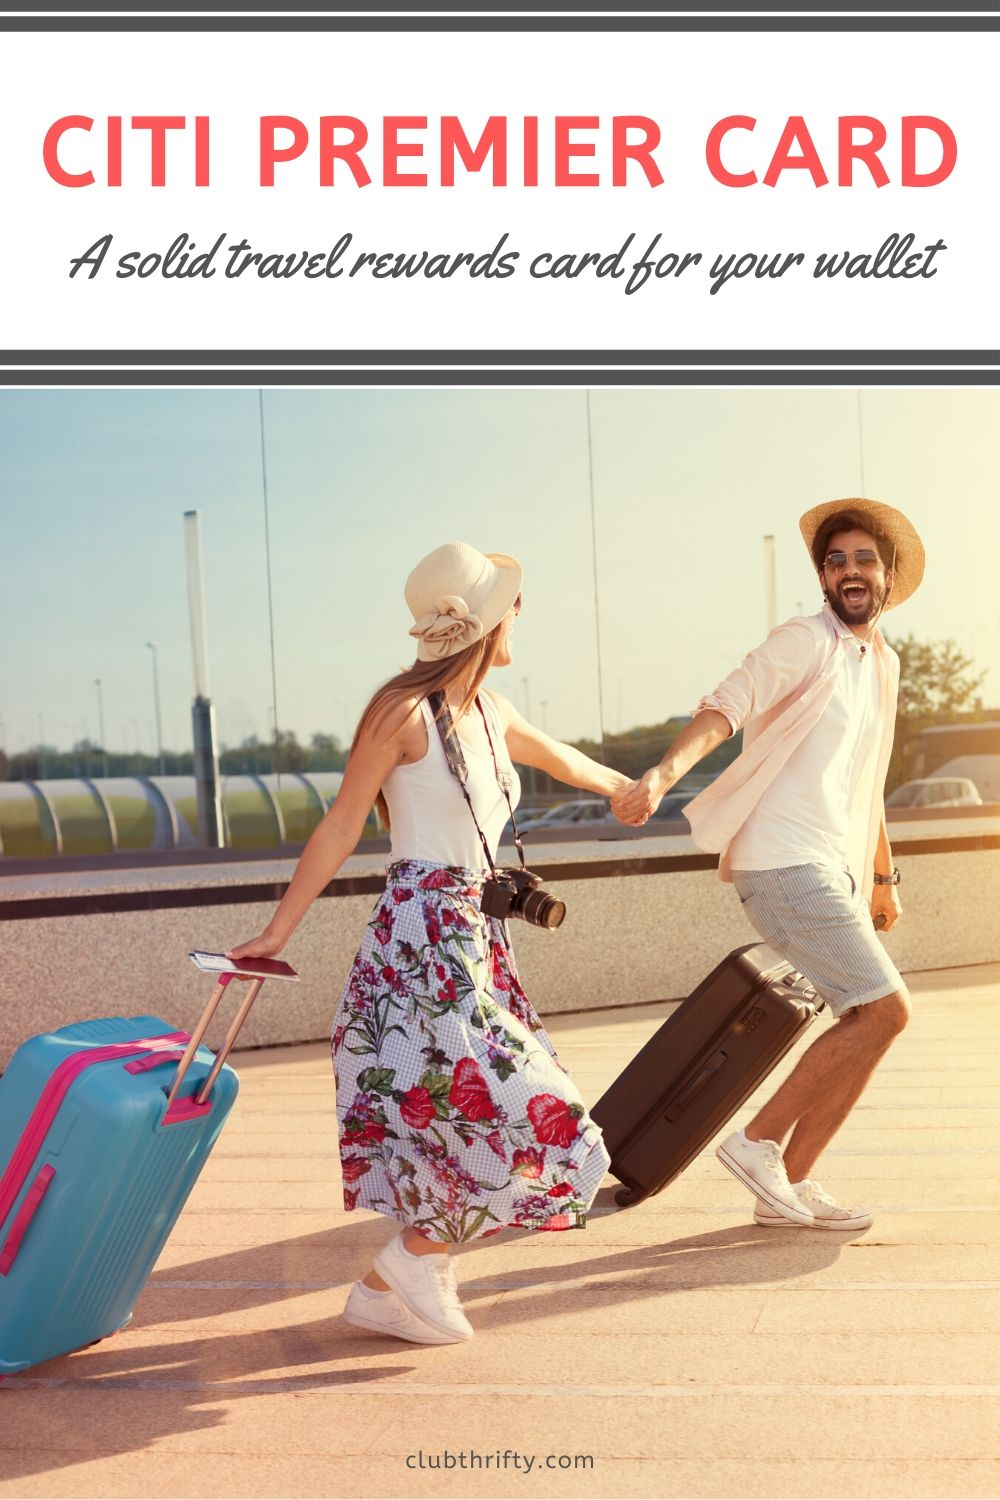 Citi Premier Card Review Pin - picture of young couple running hand in hand at airport